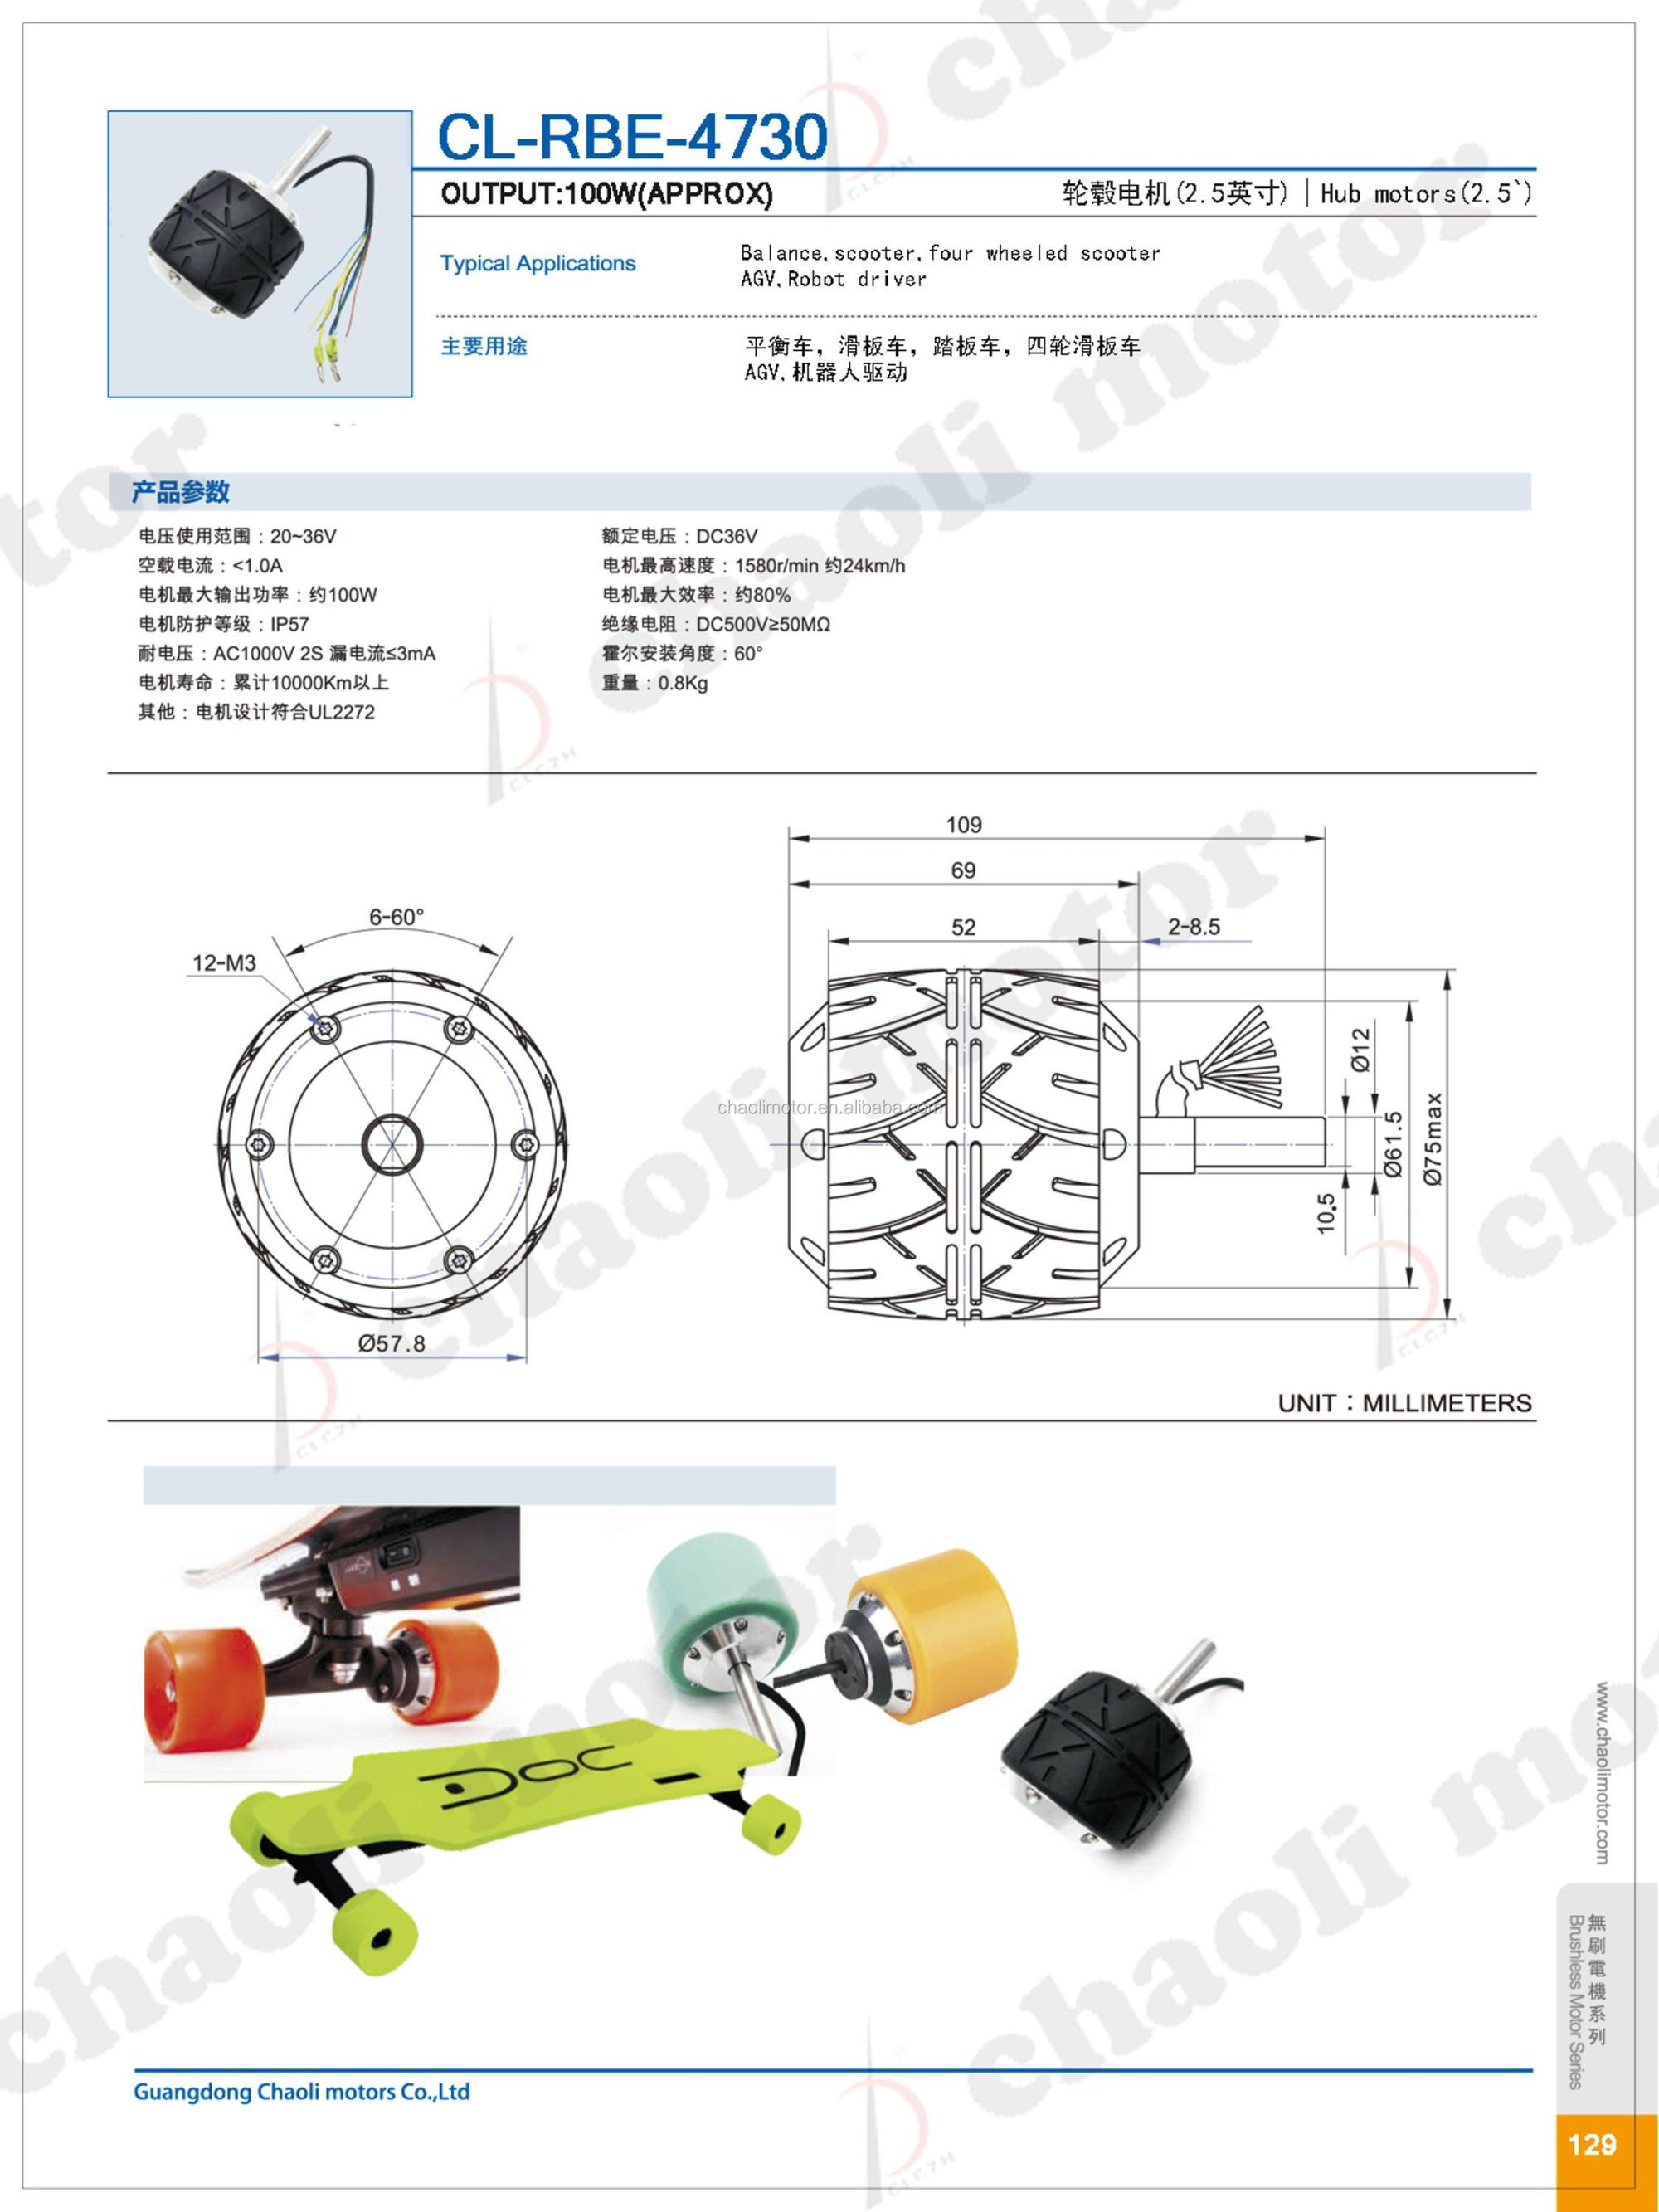 hight resolution of 2 5 inch wheel hub motor cl rbe 4730 with 36v and 100w for scooter